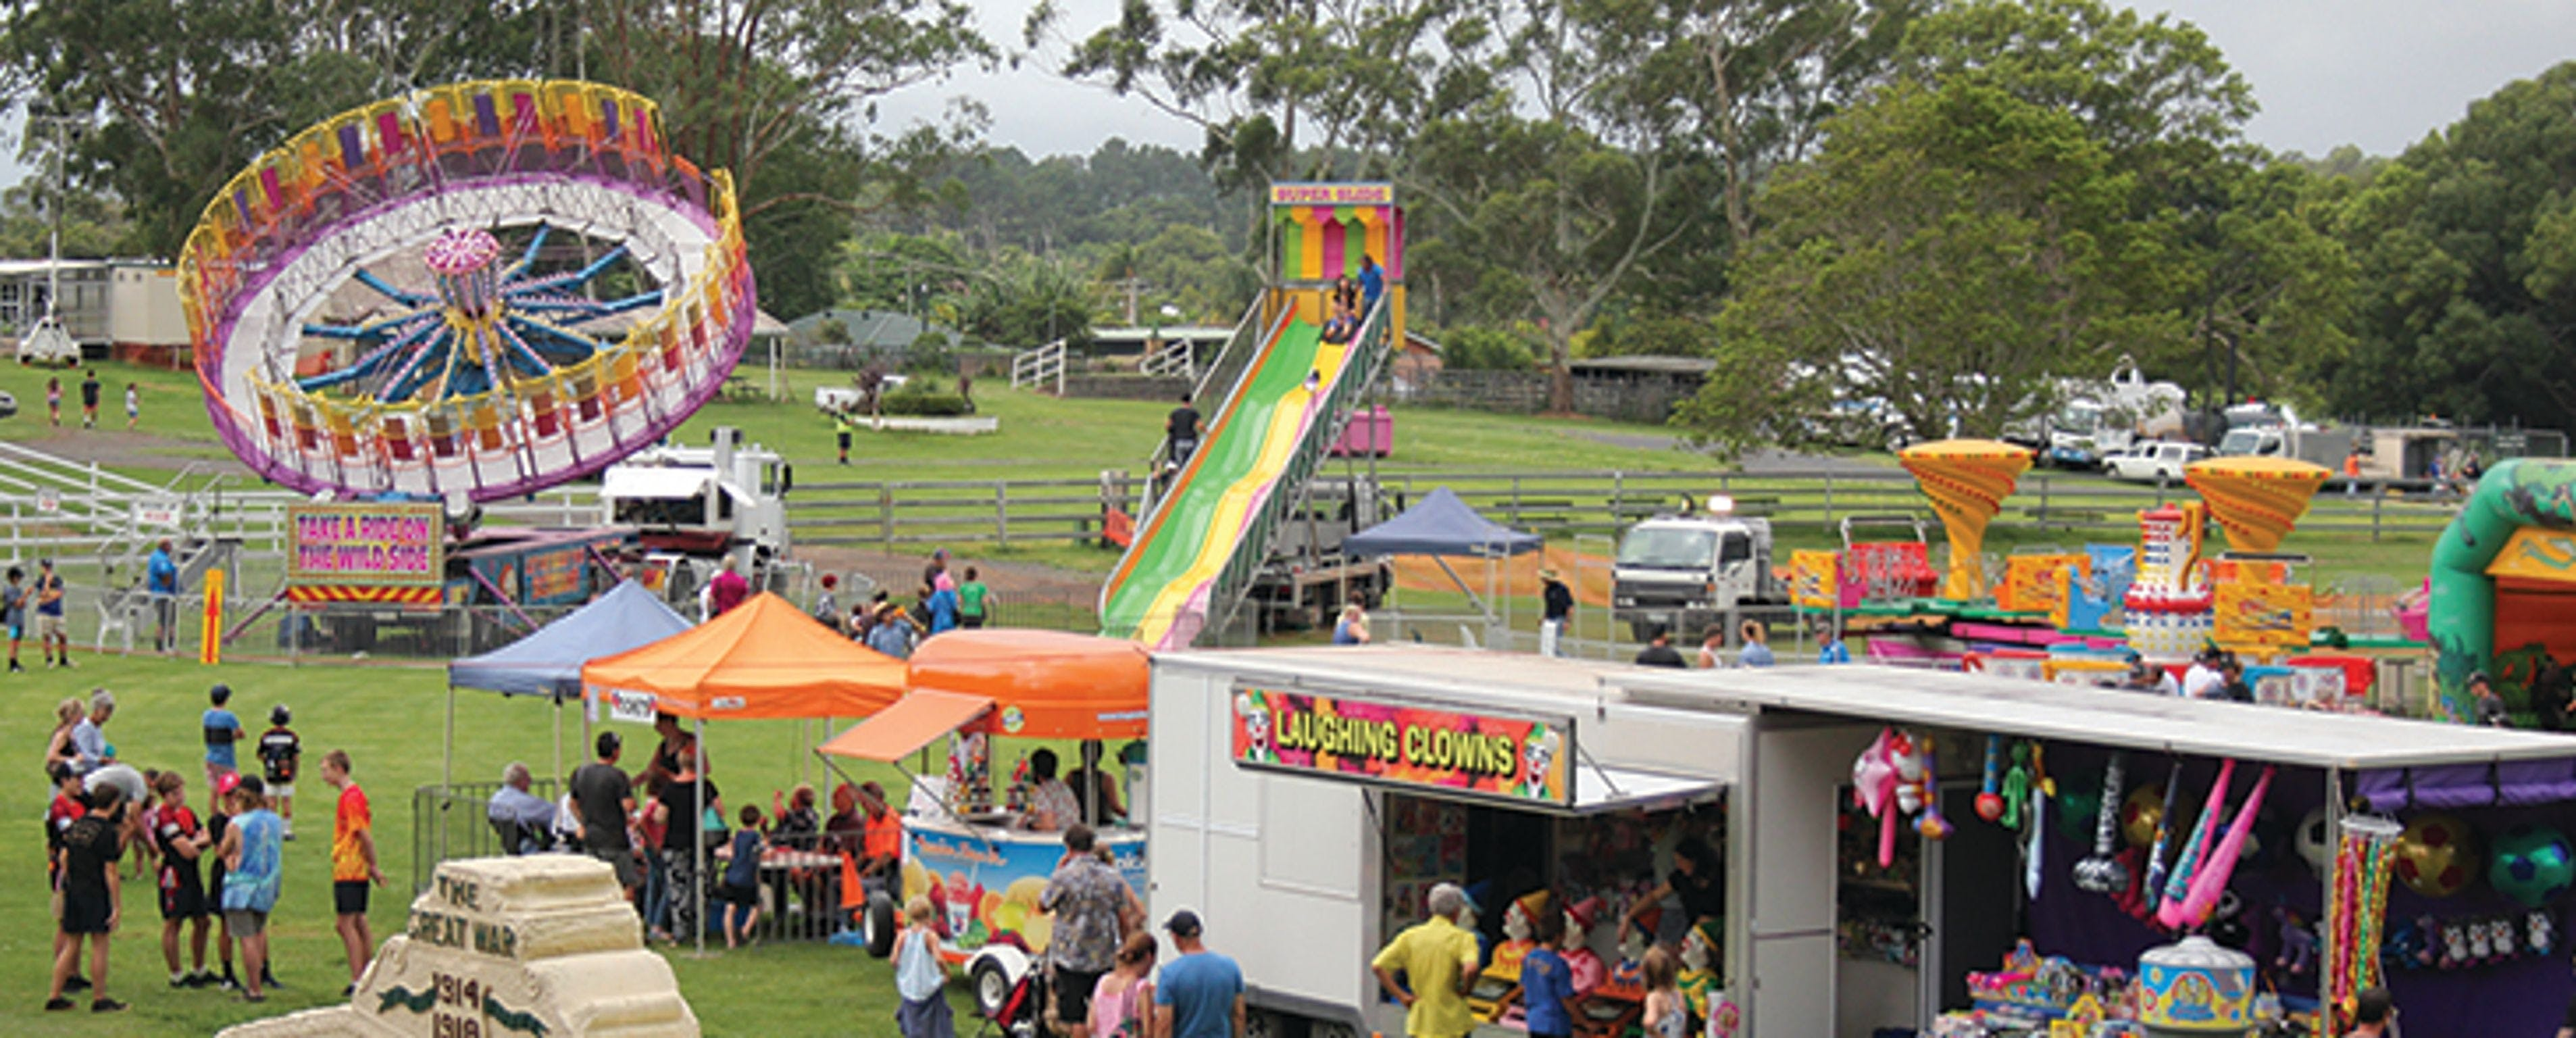 Alstonville Agricultural Society Show - Accommodation Resorts